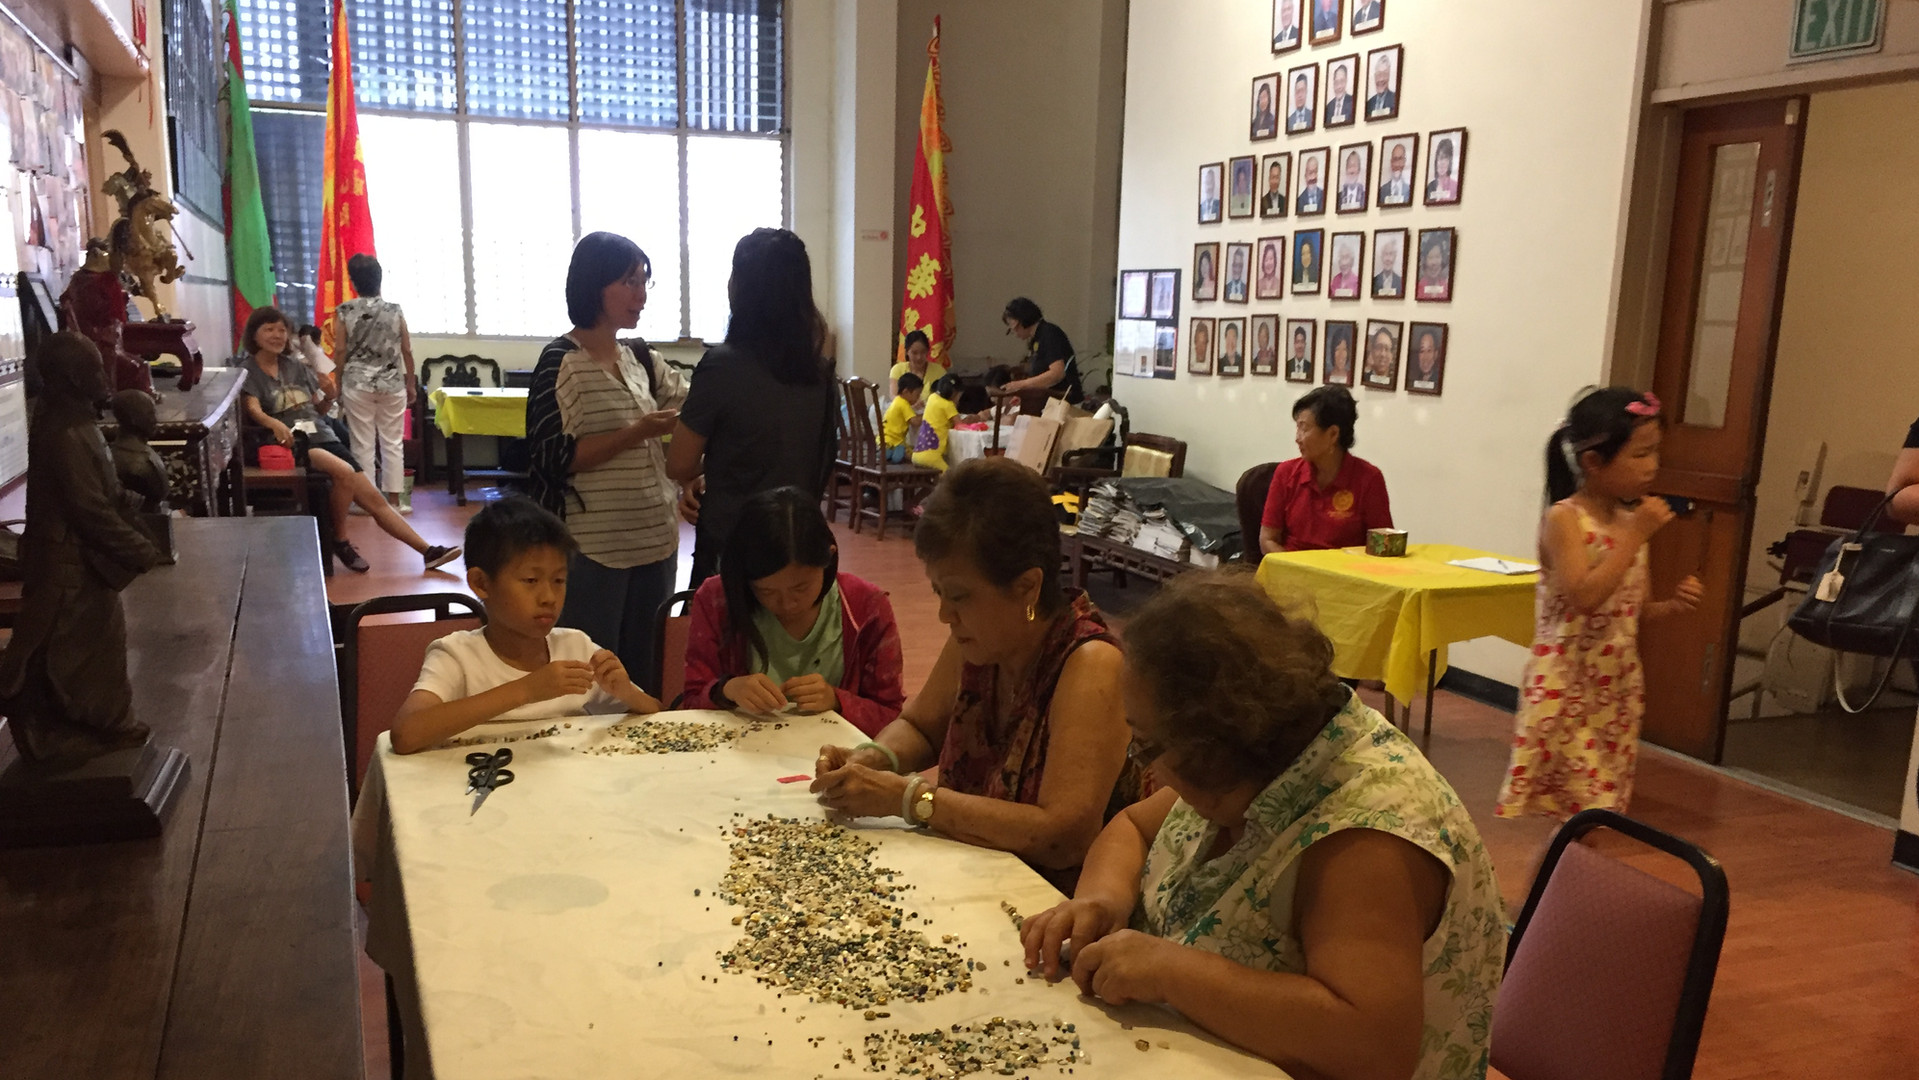 Participants enjoying the crafts